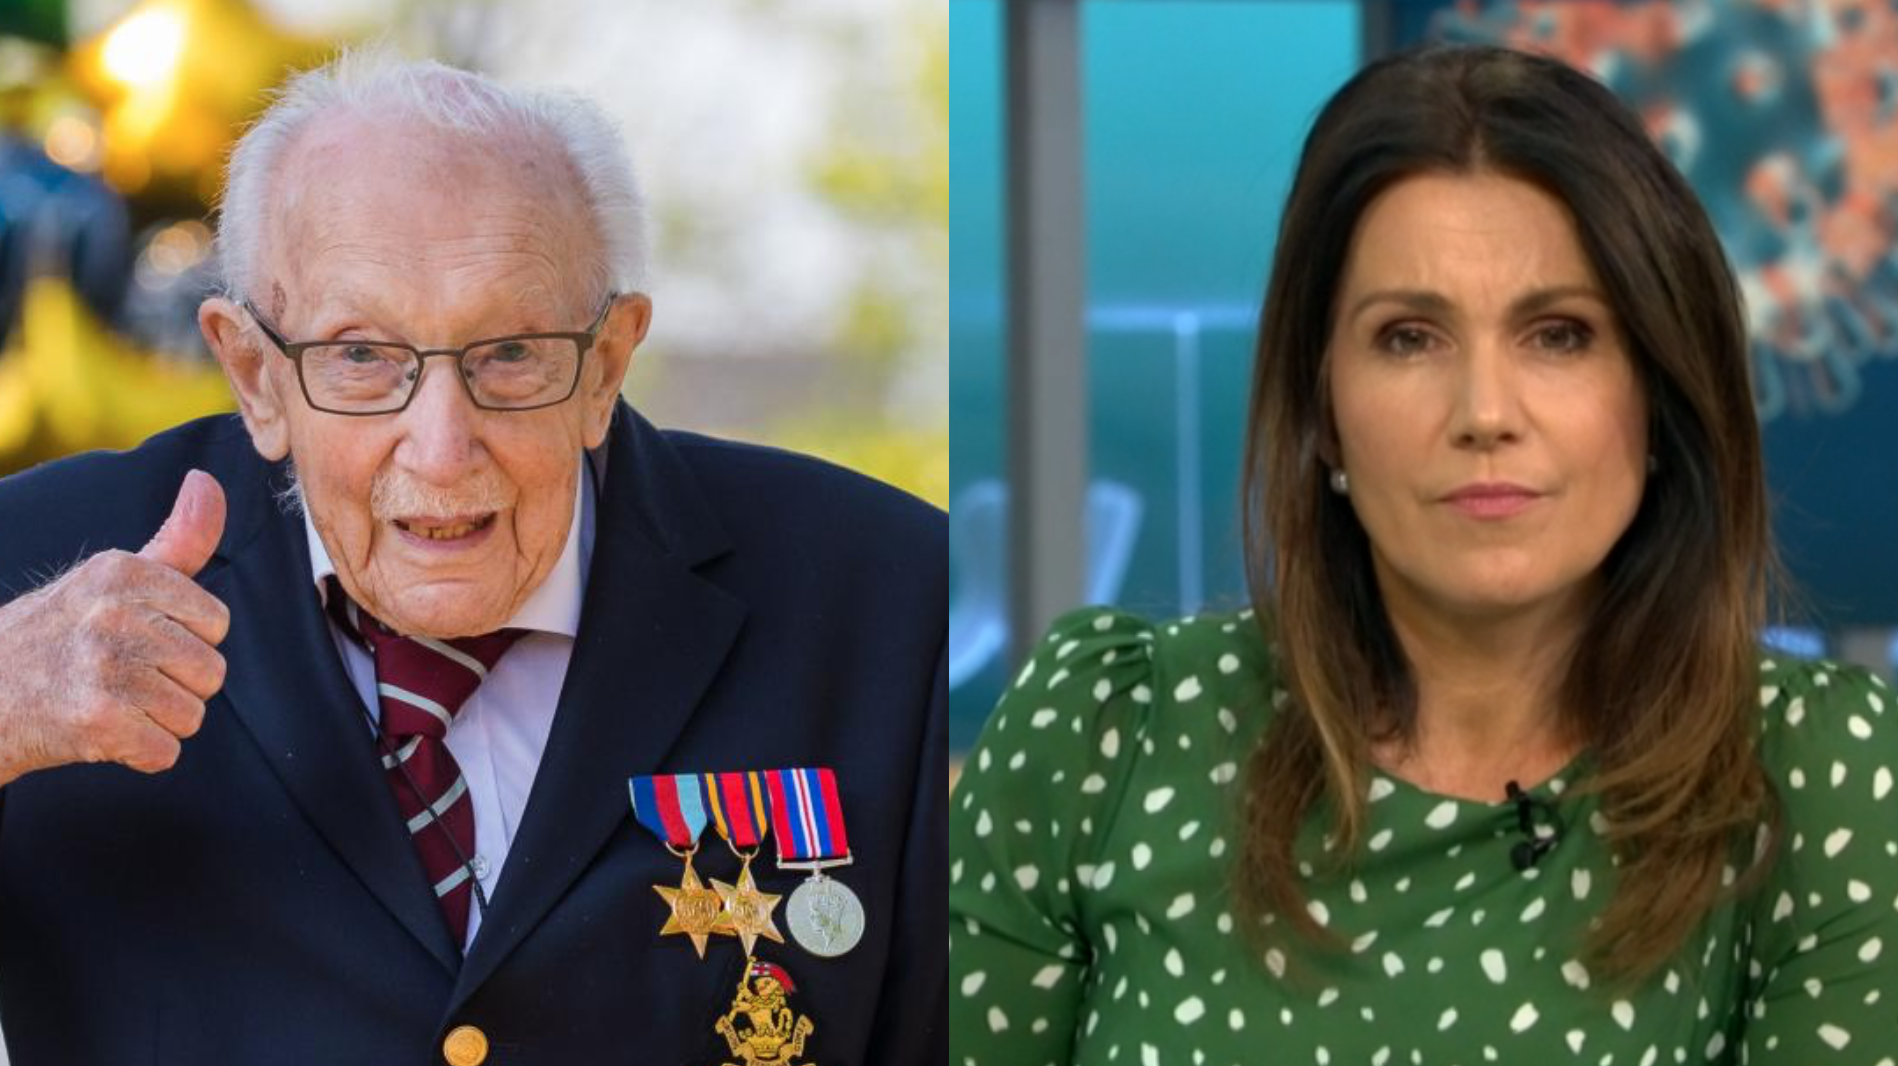 Colonel Tom Moore's GMB interview leaves fans in tears after he discusses late wife Pamela